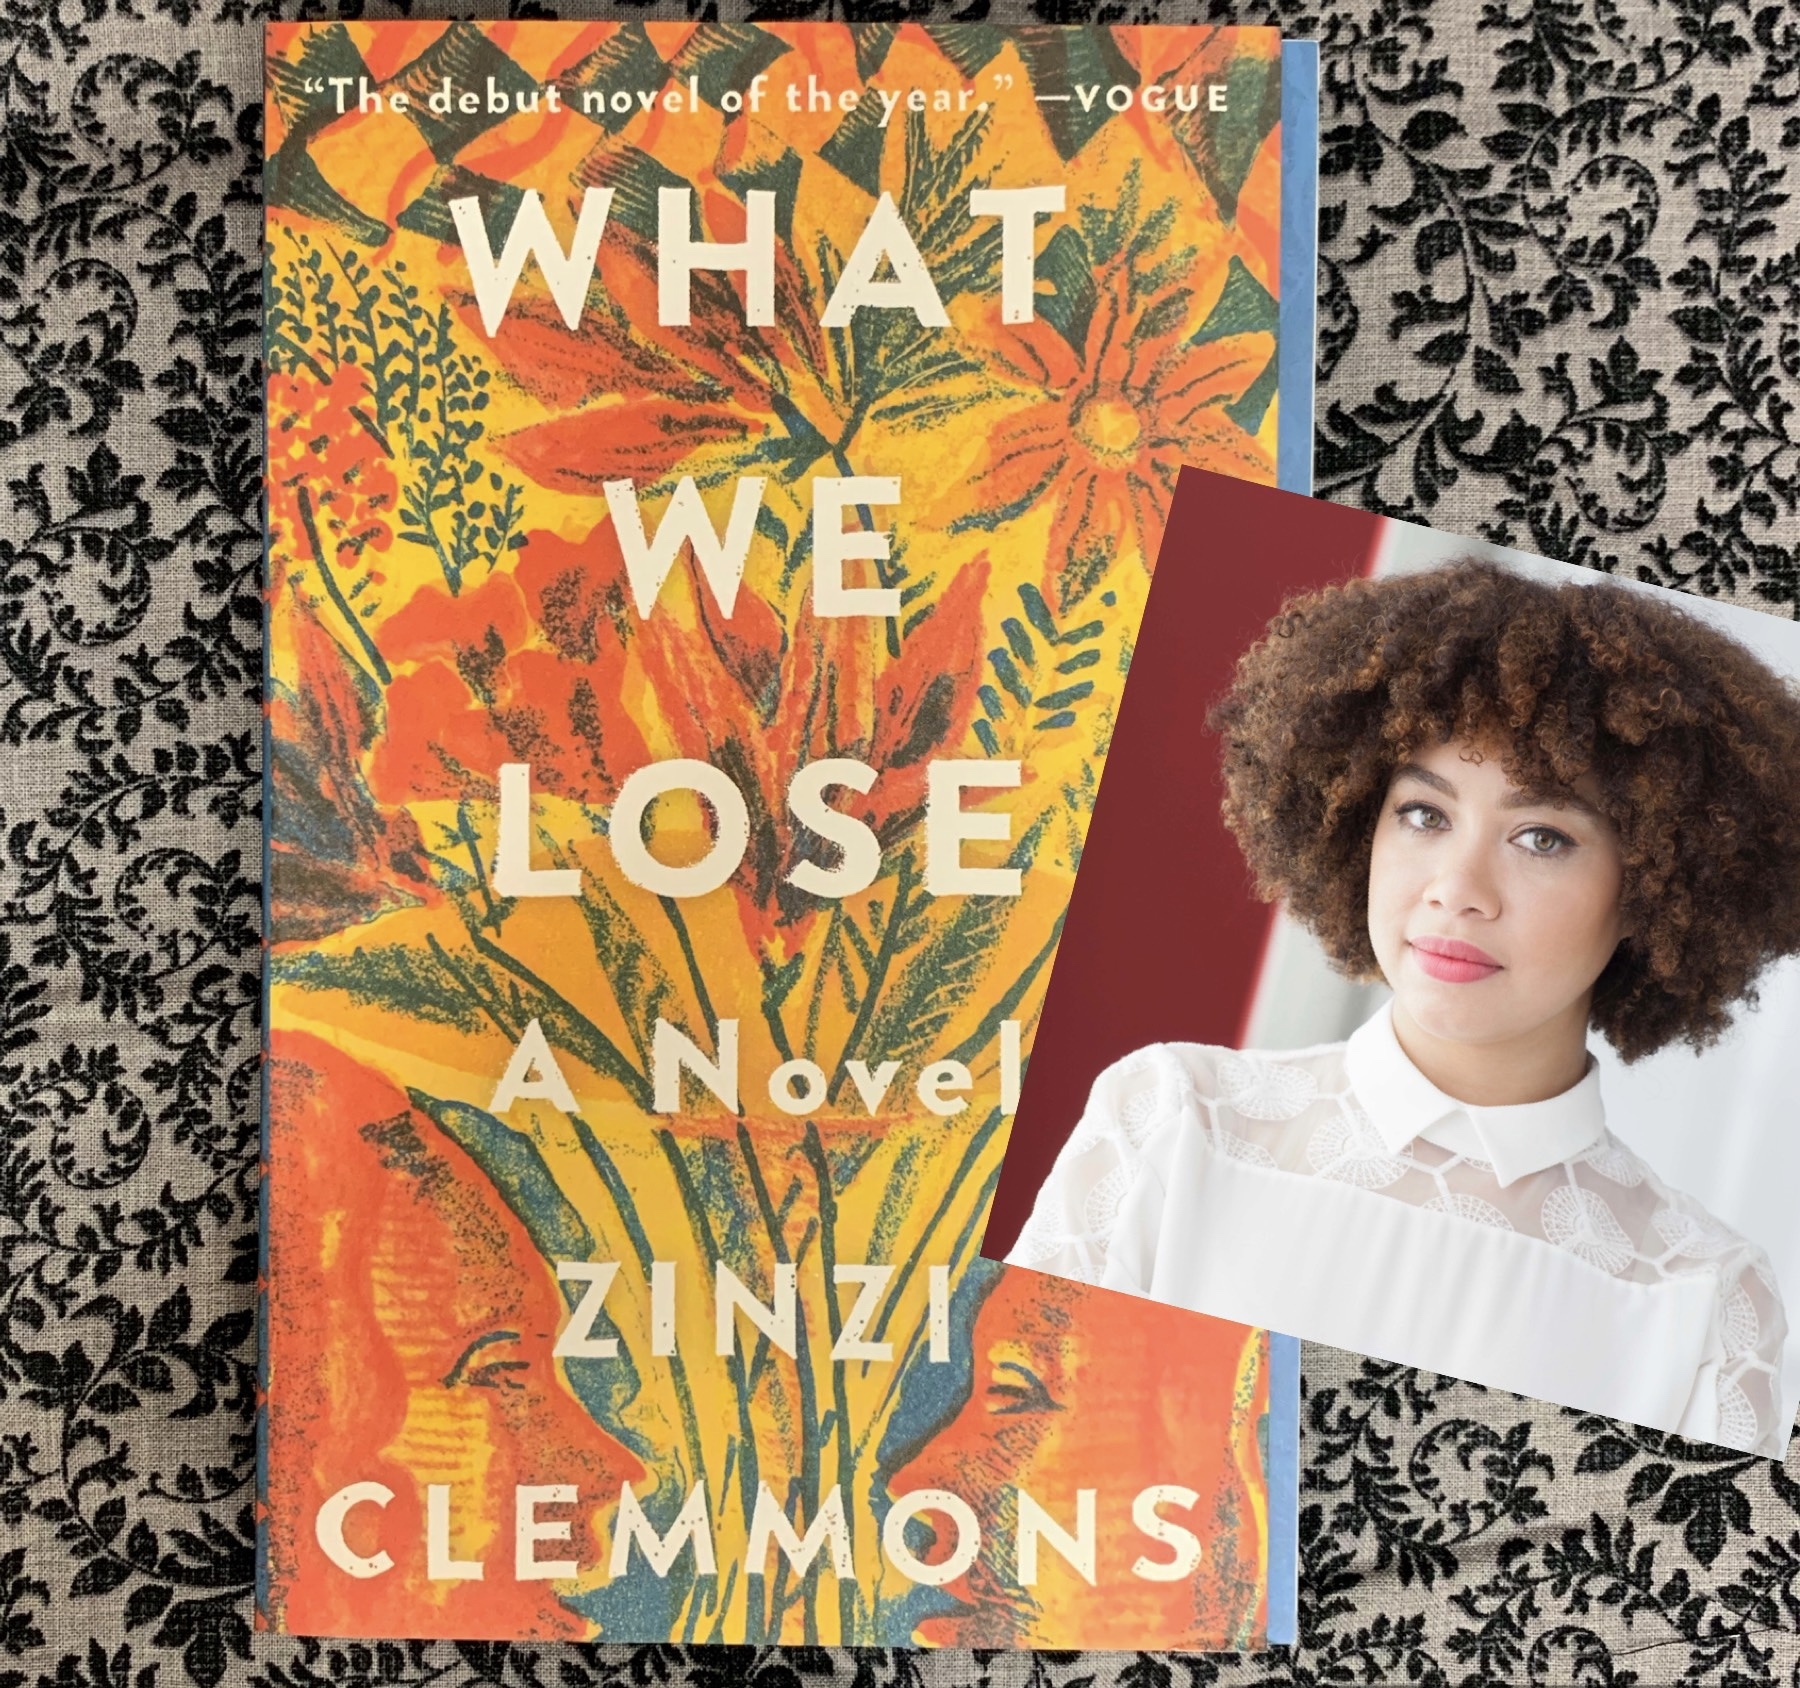 Book cover of the novel What We Lose and author photo of Zinzi Clemmons